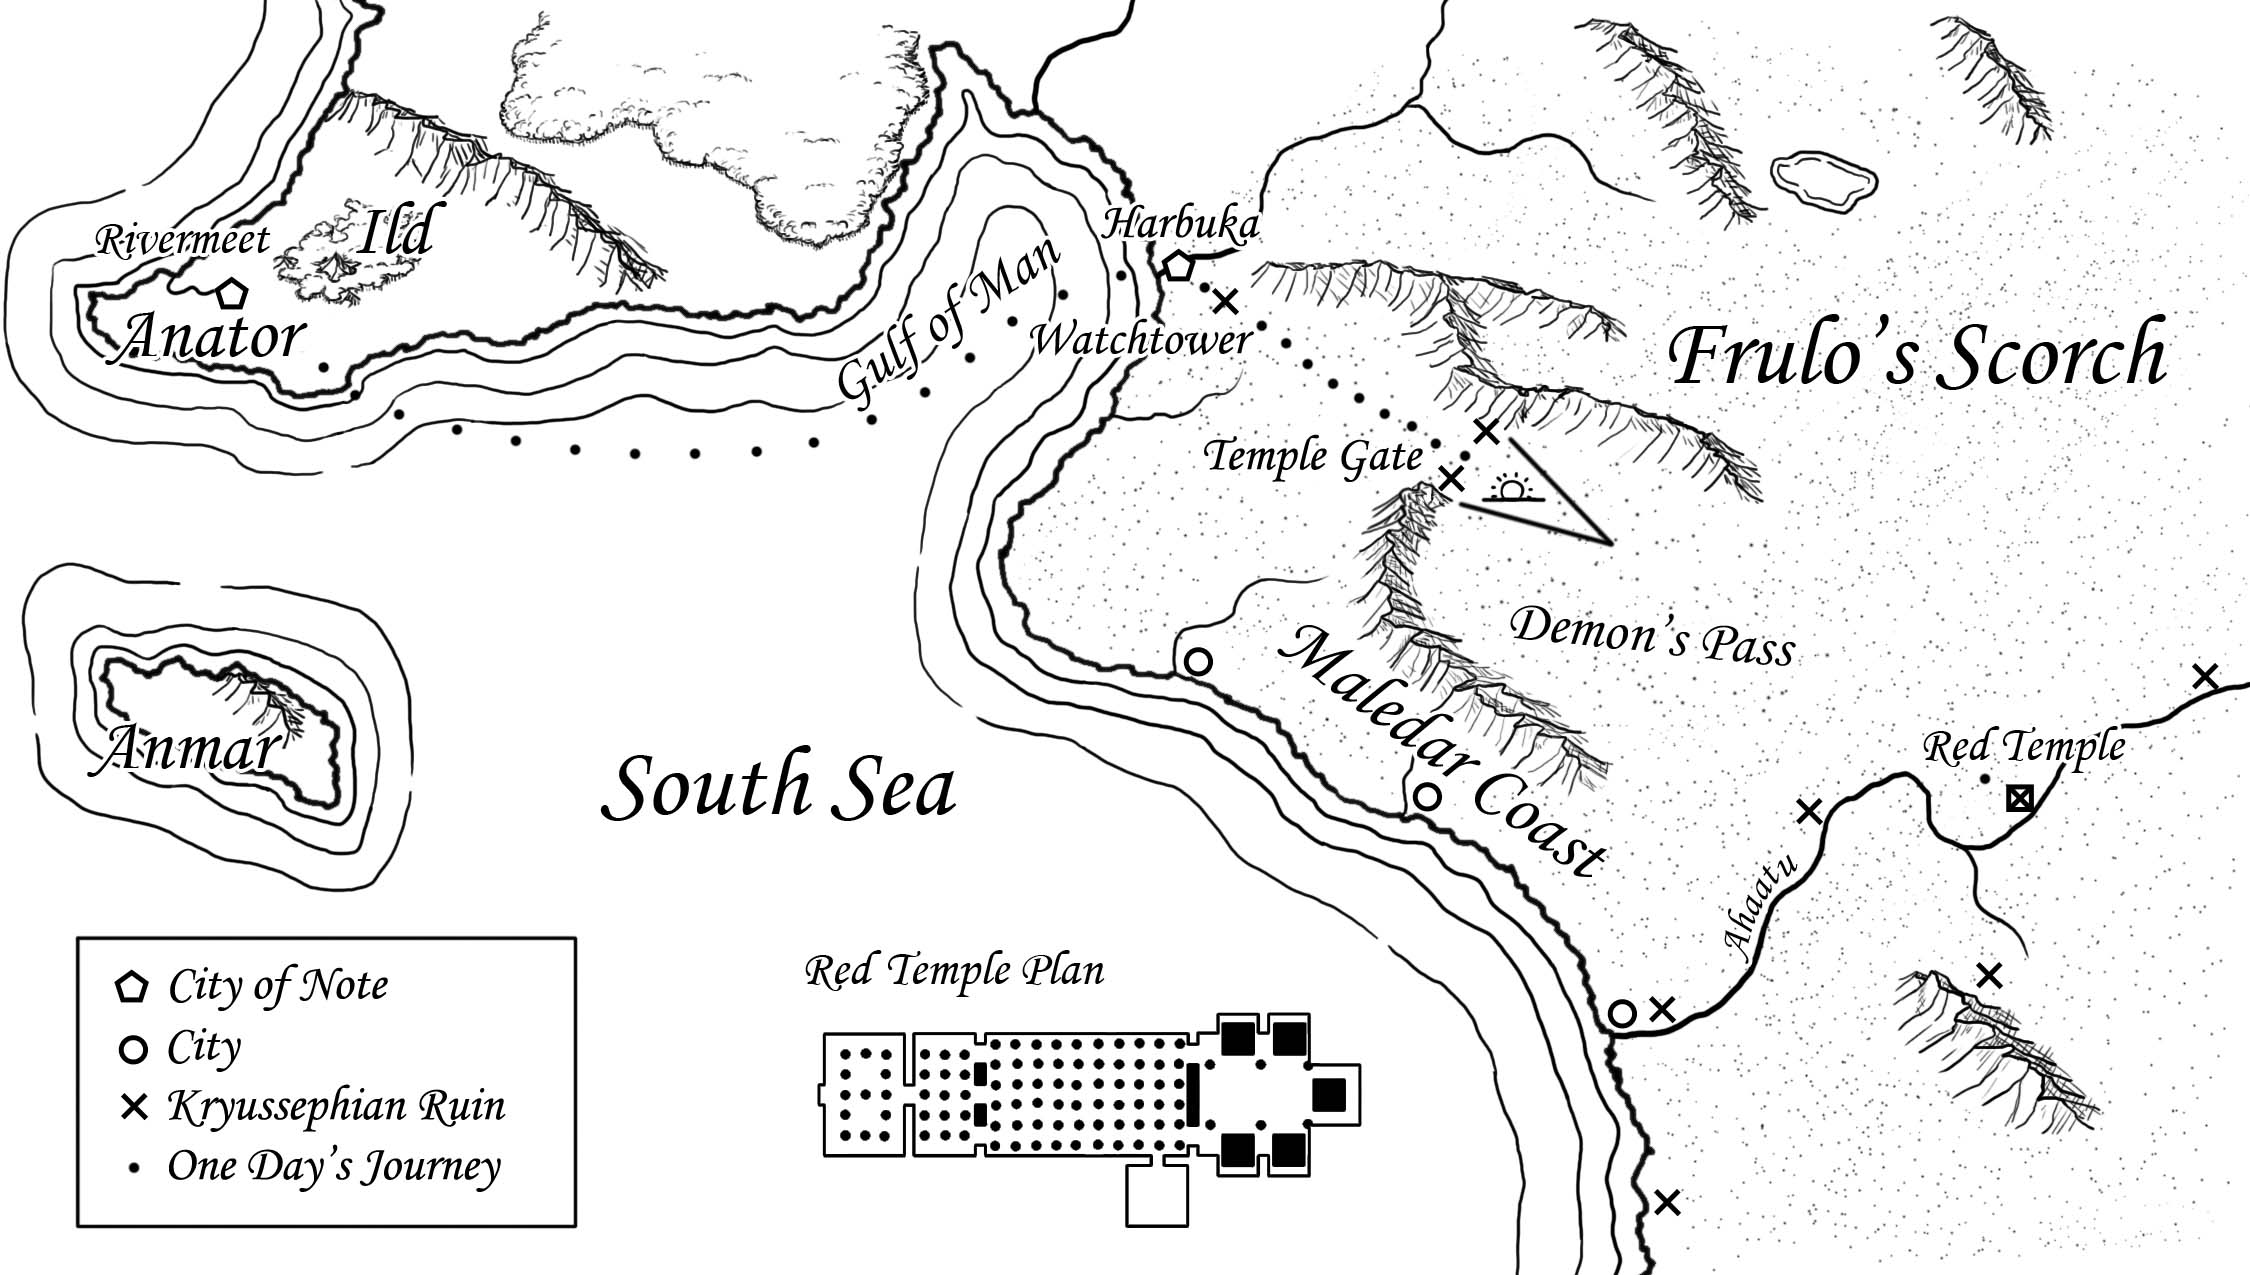 Frulo's Scorch and the South Sea